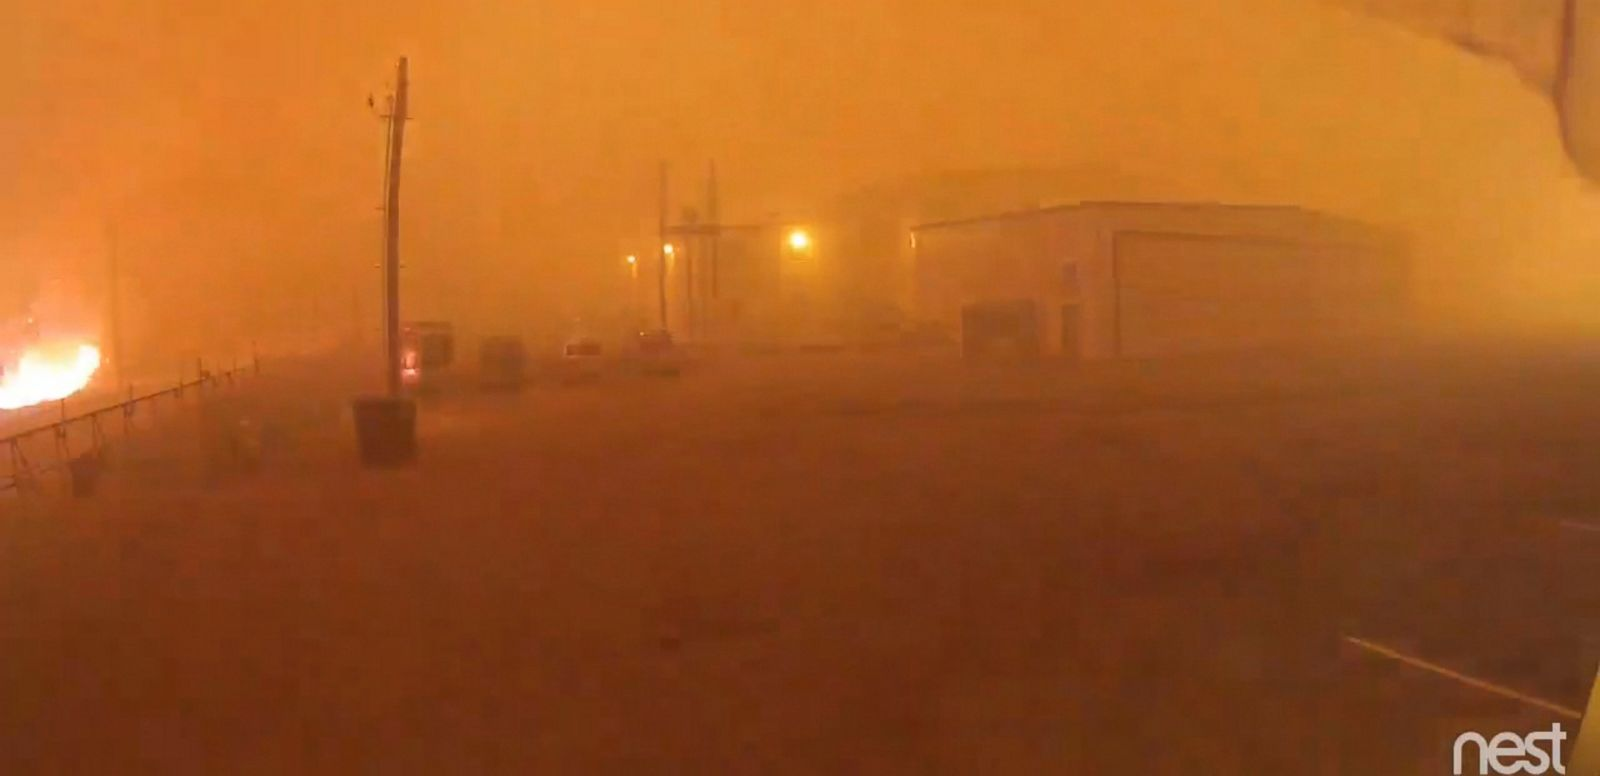 VIDEO: Video shows flames and smoke moving through a hangar in Fort McMurray, Alberta.